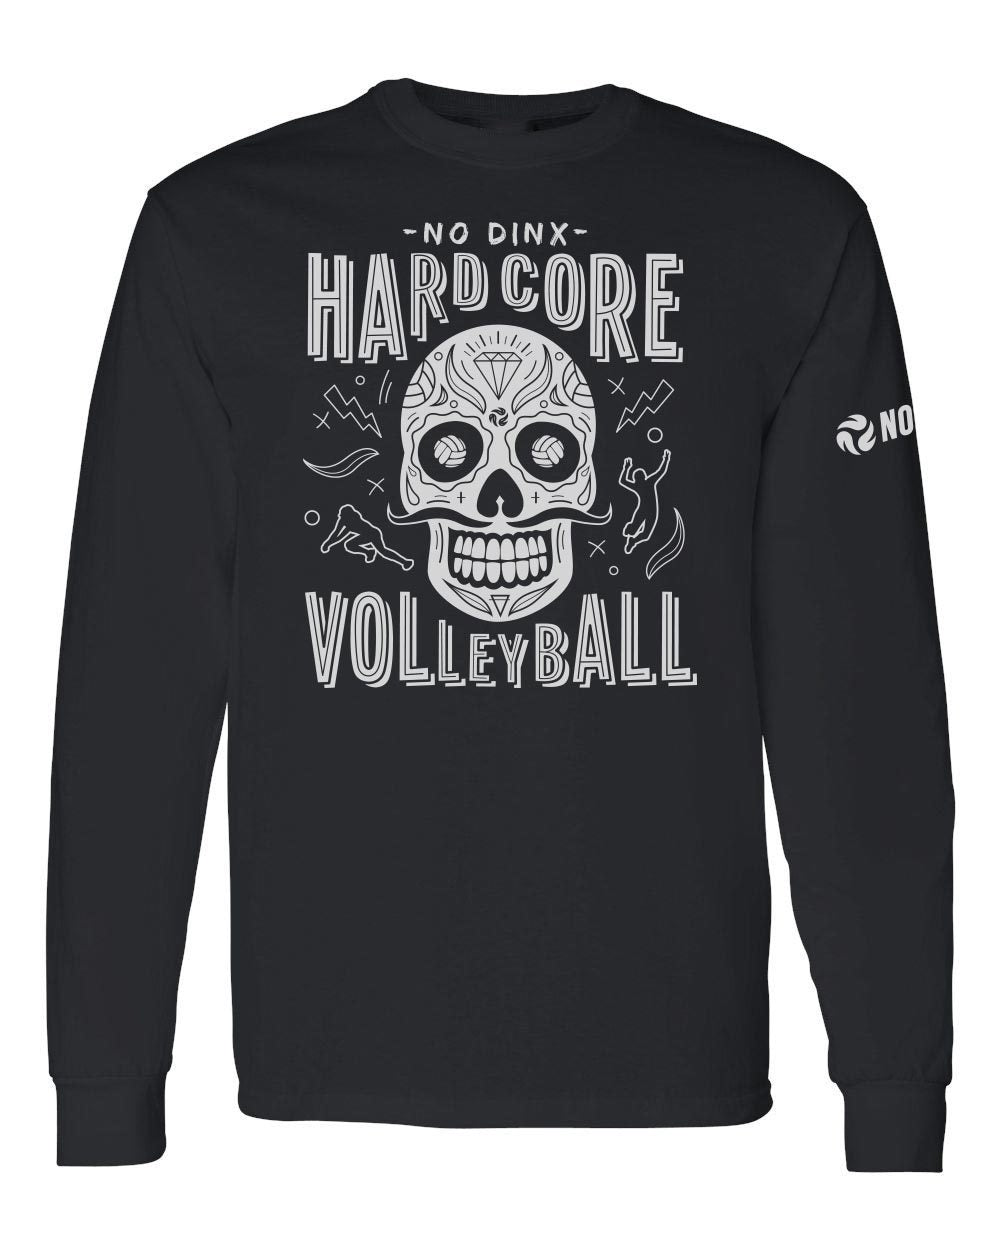 Floater Long Sleeve Shirt - No Dinx Volleyball